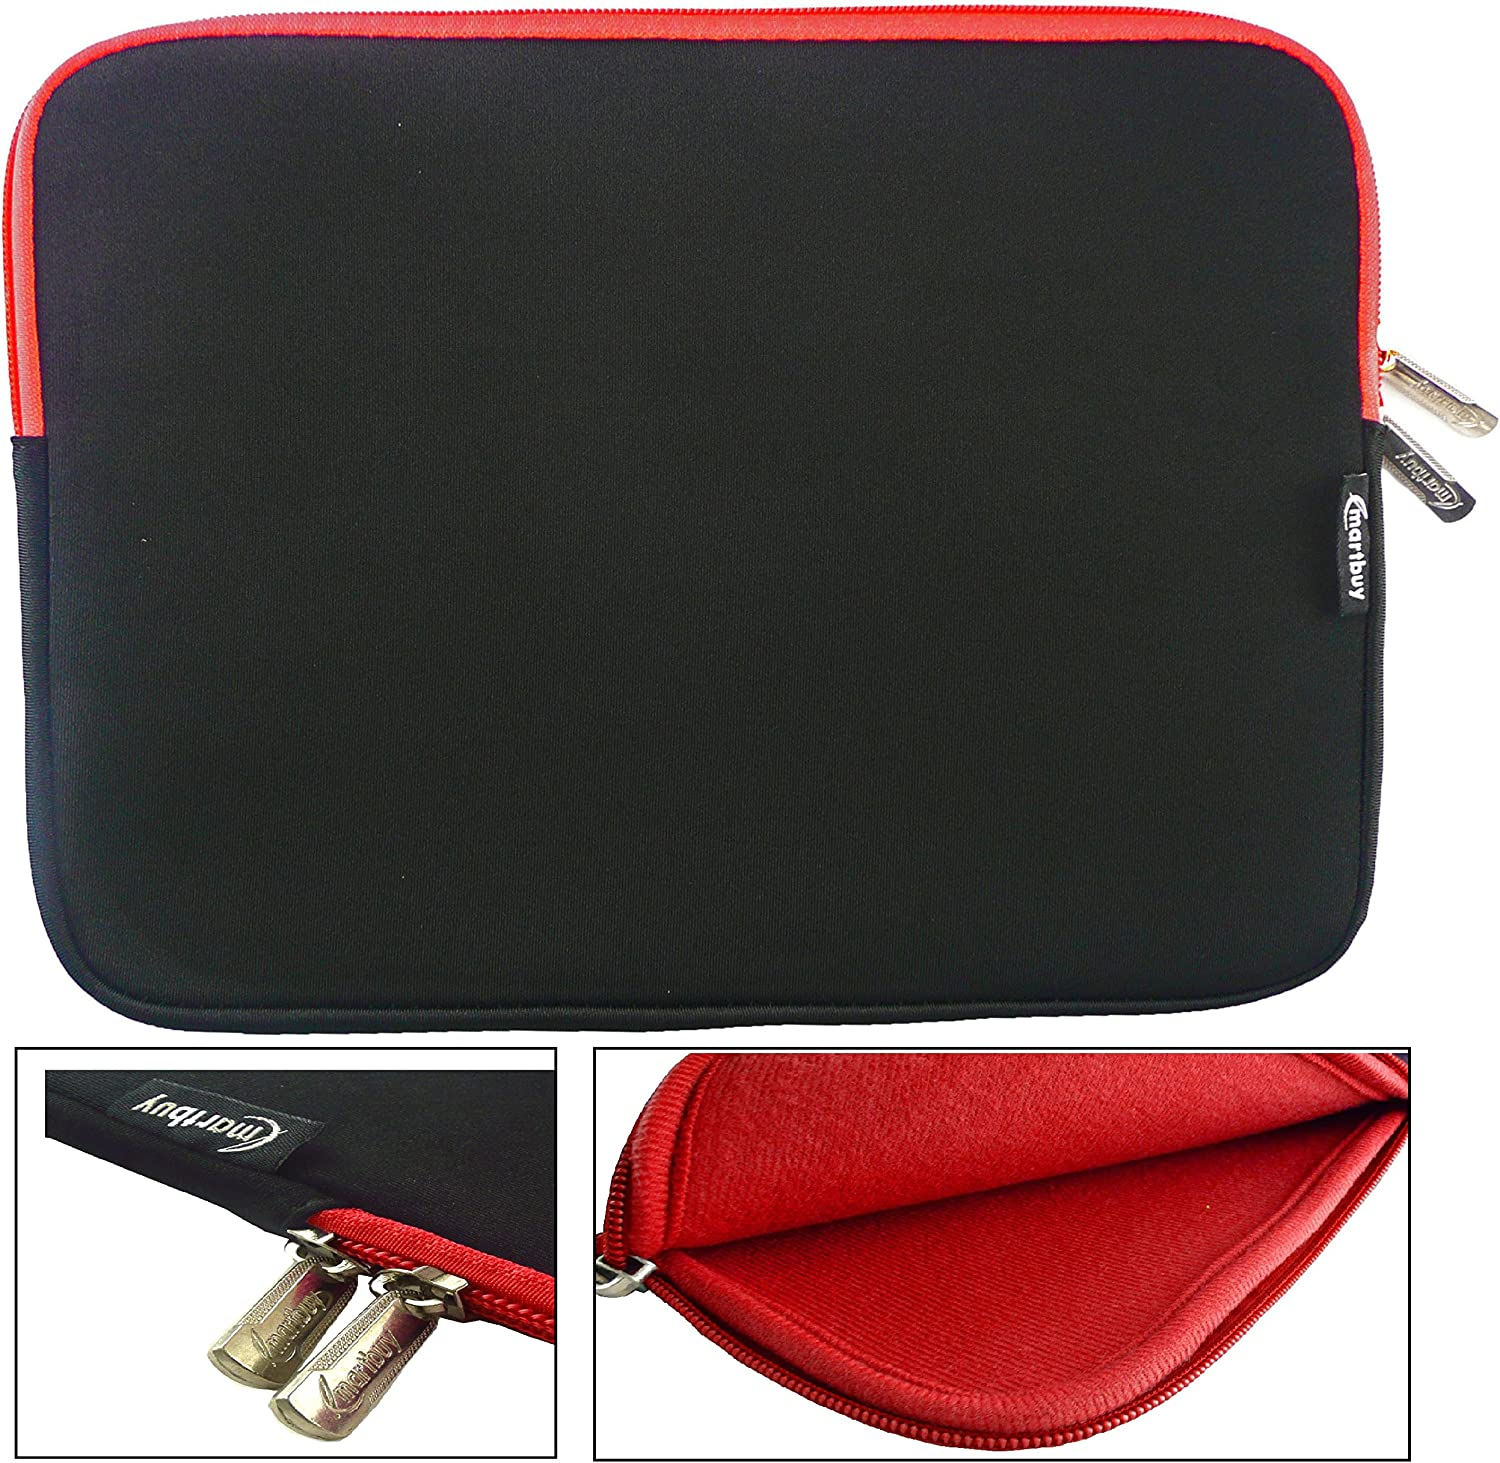 Emartbuy/® Black 11.6-12.5 Inch Tablet Chromebook Laptop Red Water Resistant Neoprene Soft Zip Case Cover Sleeve With Red Interior /& Zip Suitable for Lenovo ThinkPad Helix 11.6 Inch Convertible Laptop